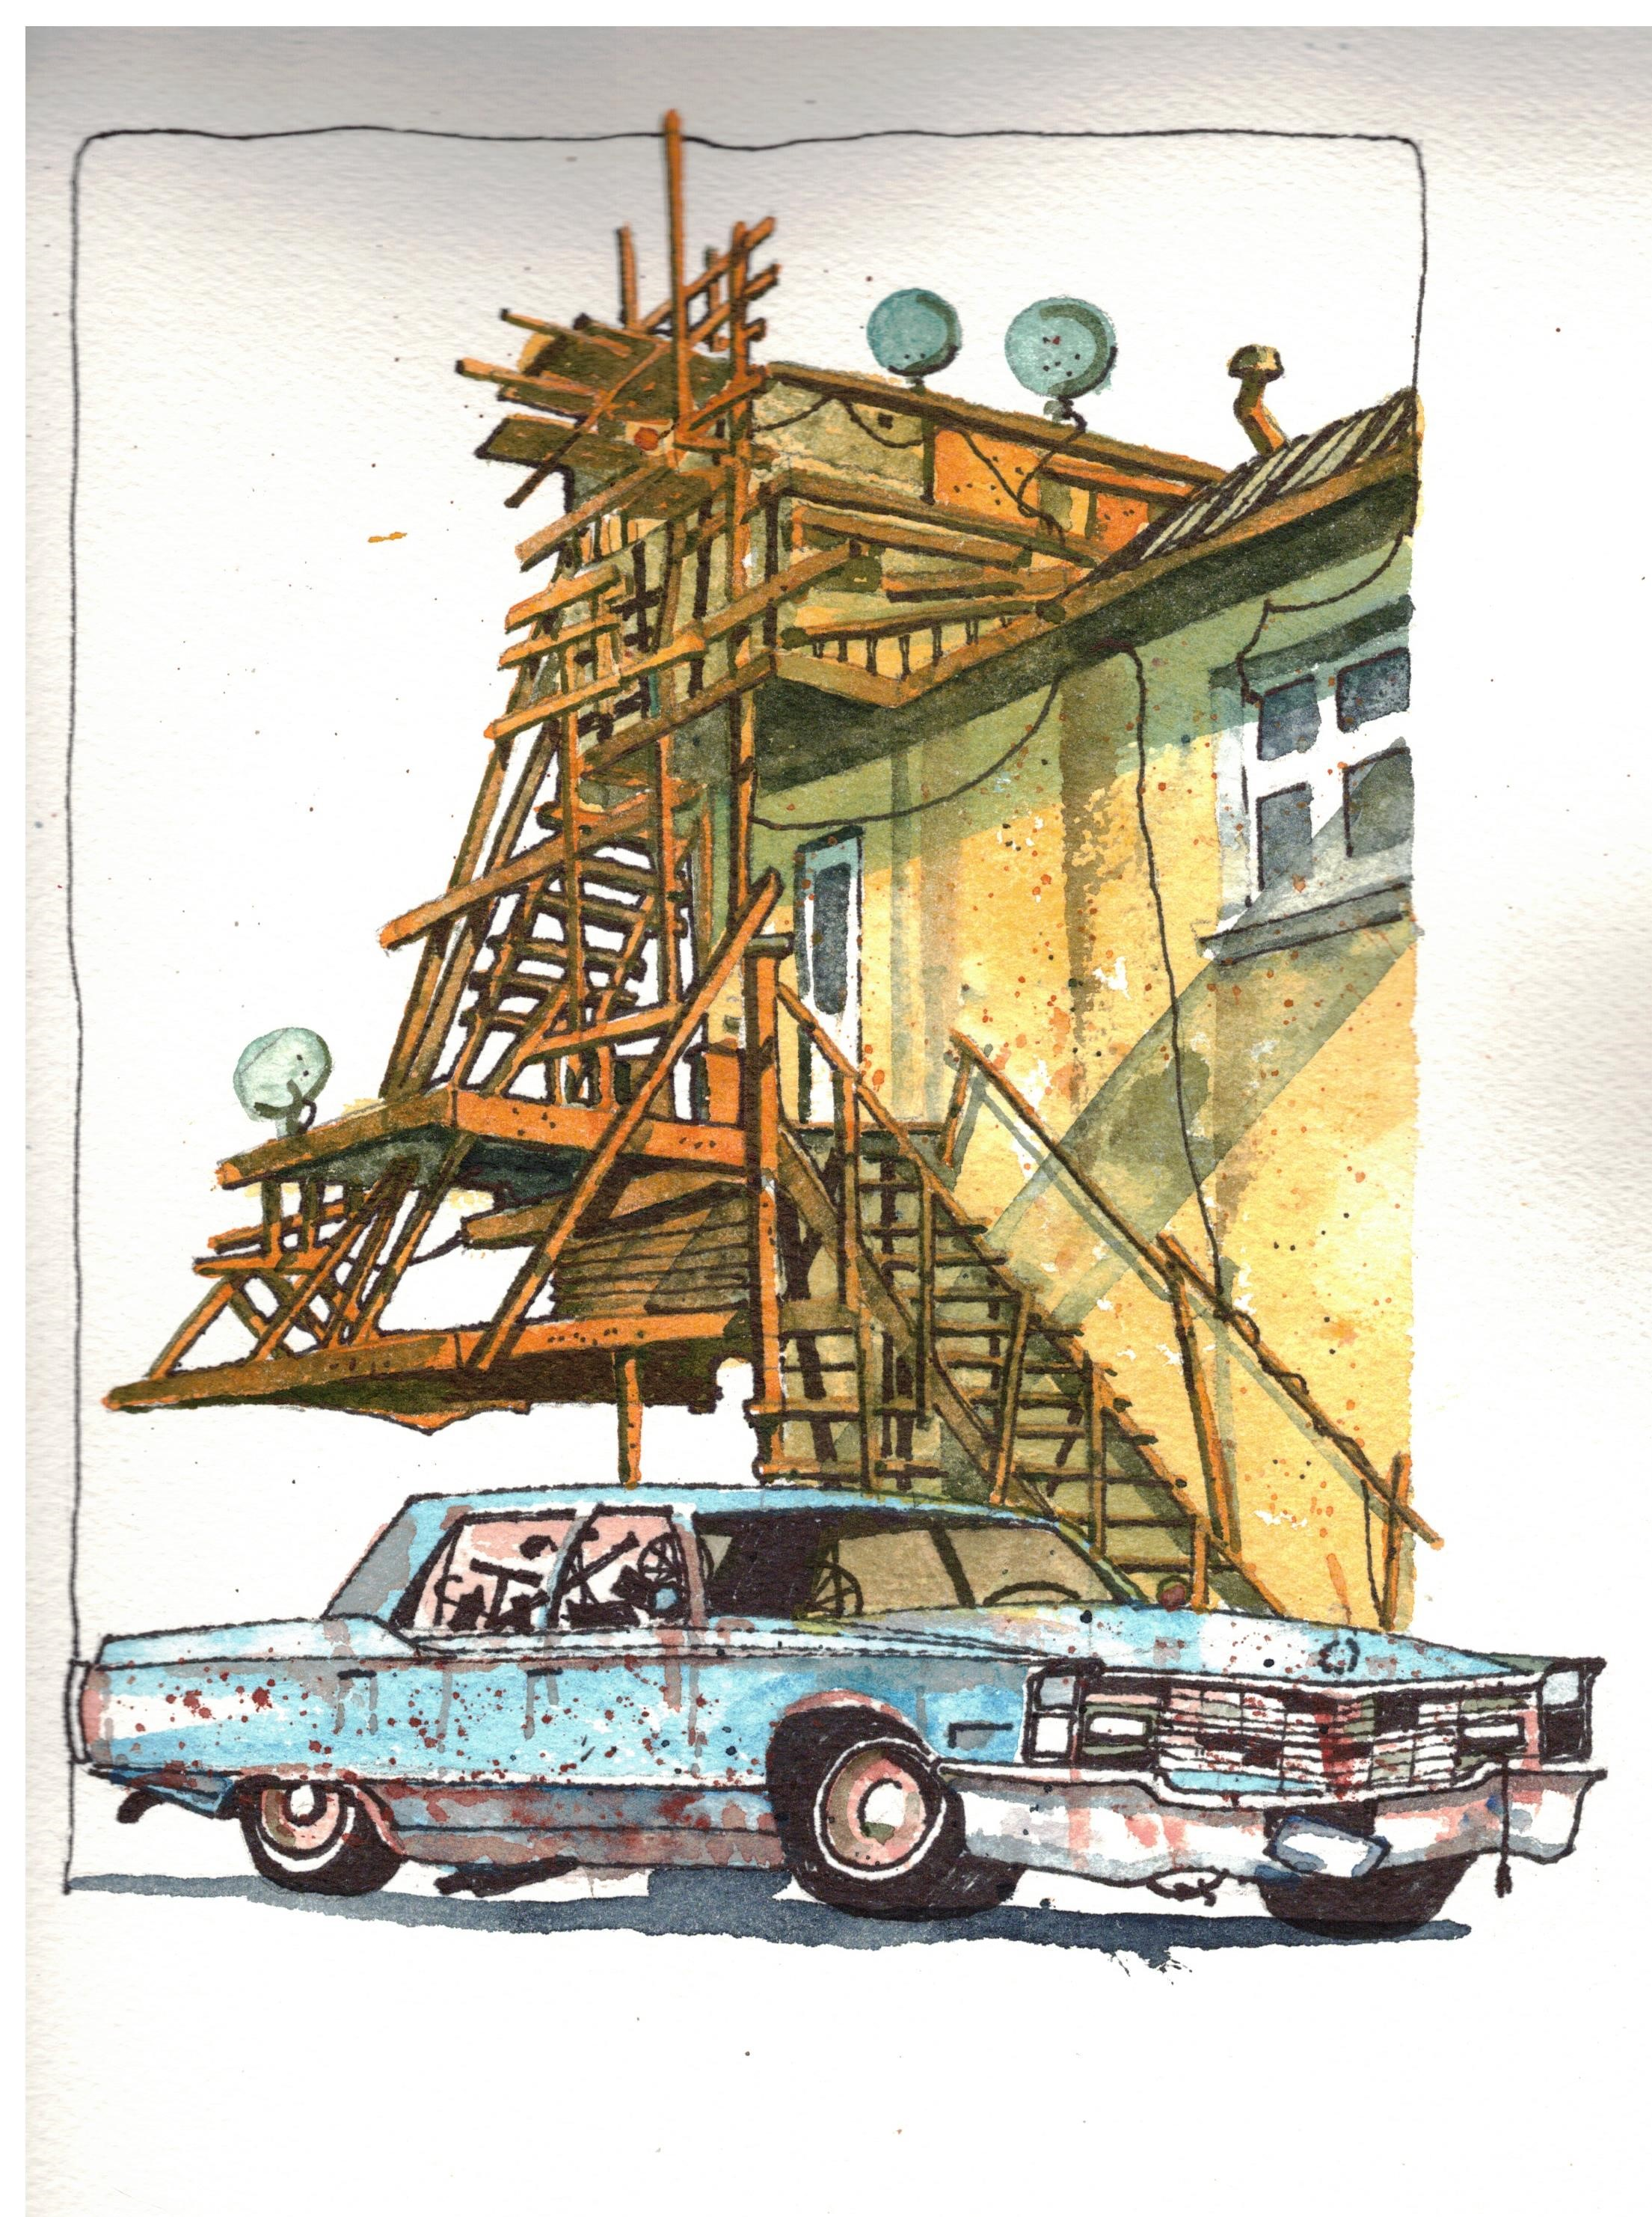 Artwork of the Hodge Podge. Yellow building with wooden stairs and an old blue car parked at the back.